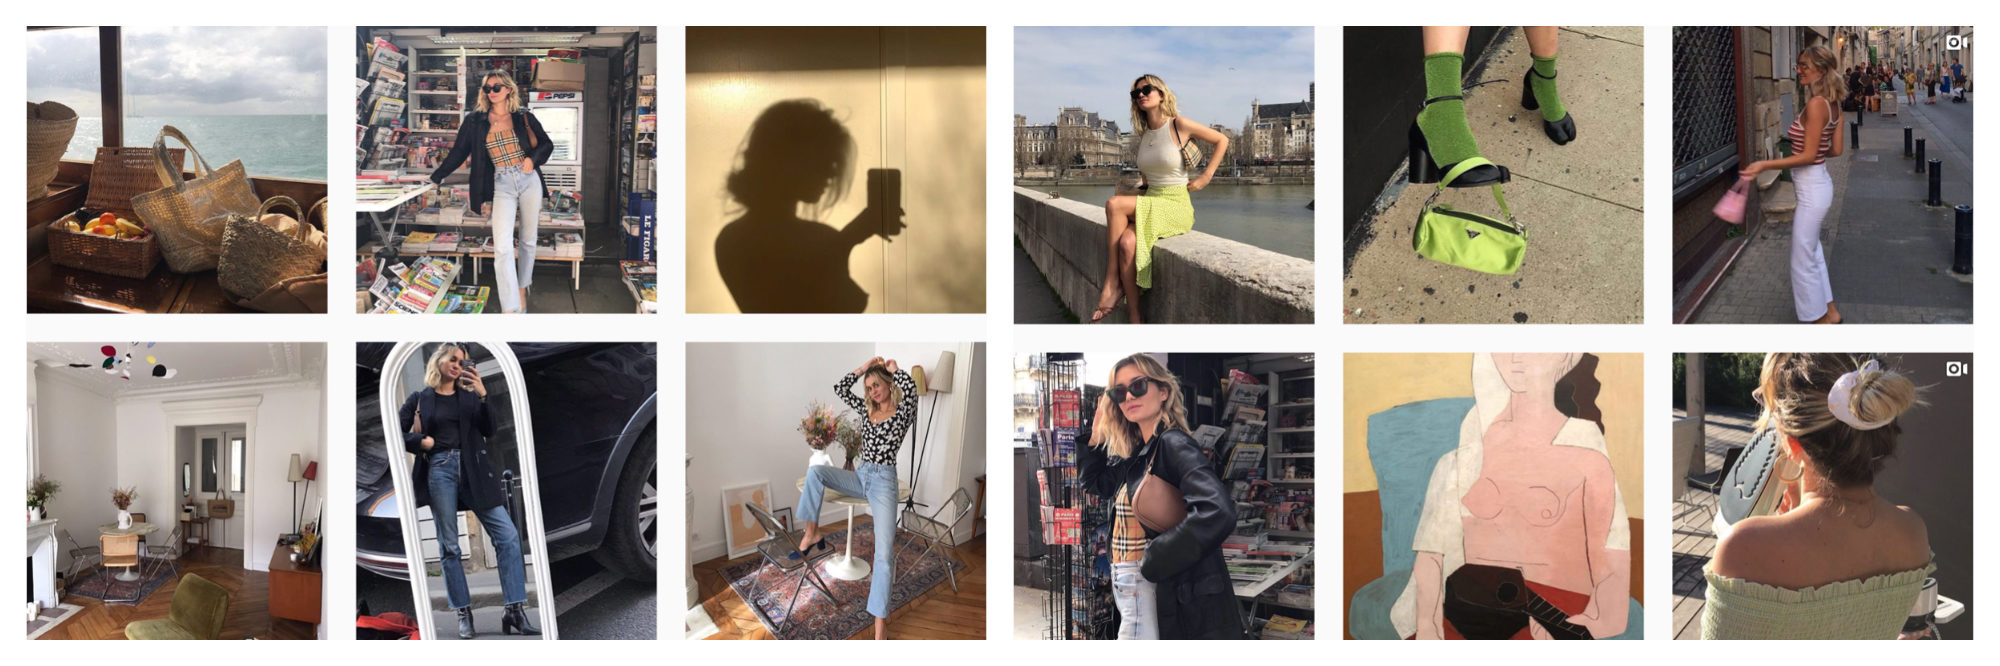 A selection of images of French Instagram fashion influencer Mais Moreau.